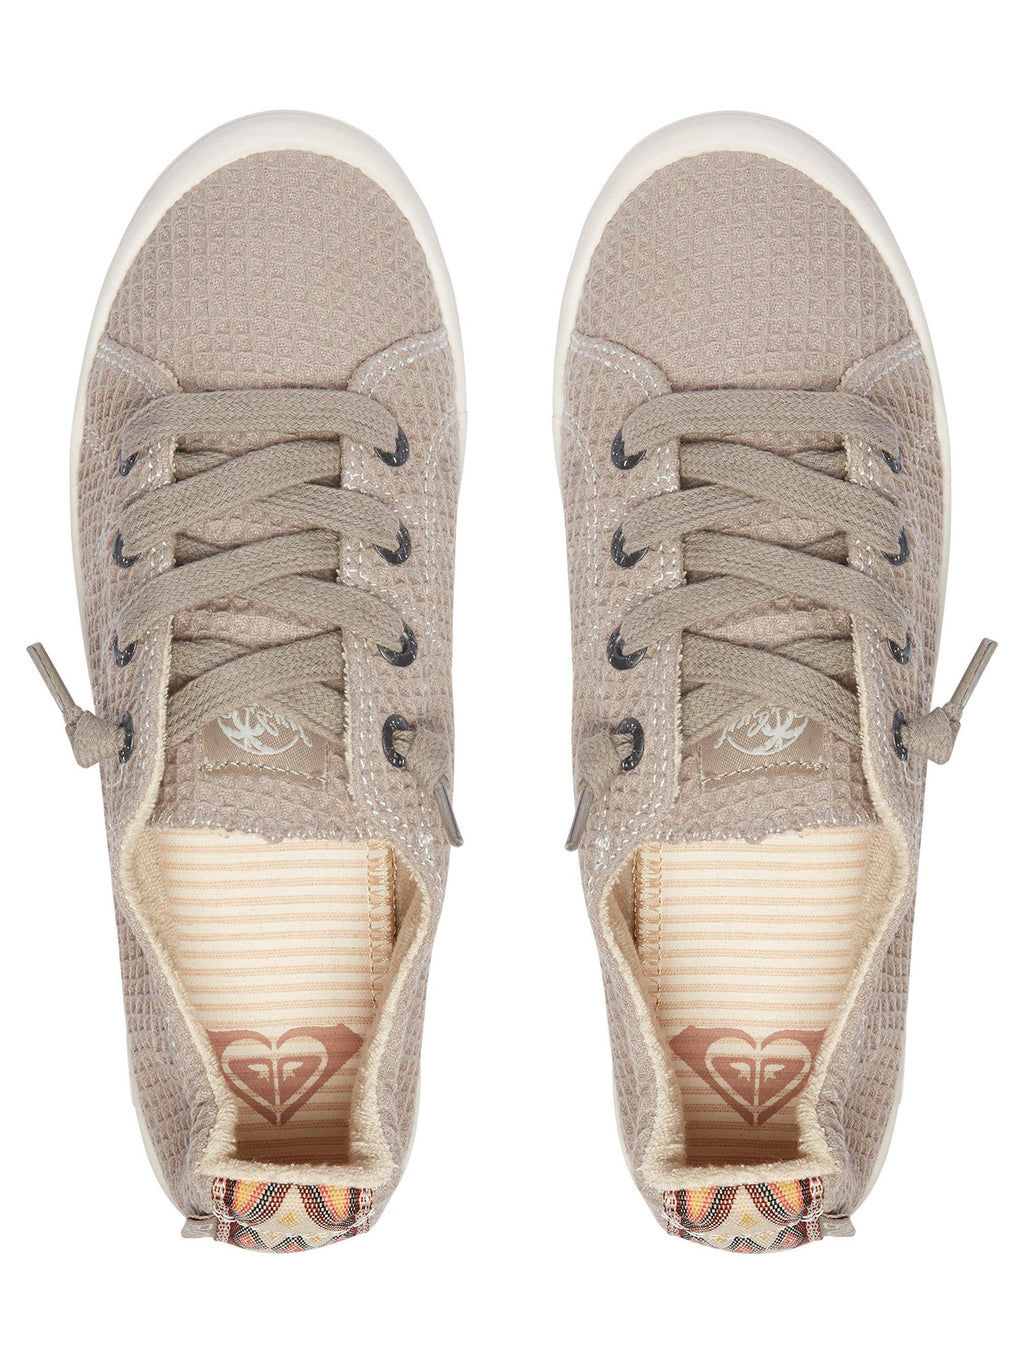 Roxy Bayshore III Lace Up Shoes - Women's